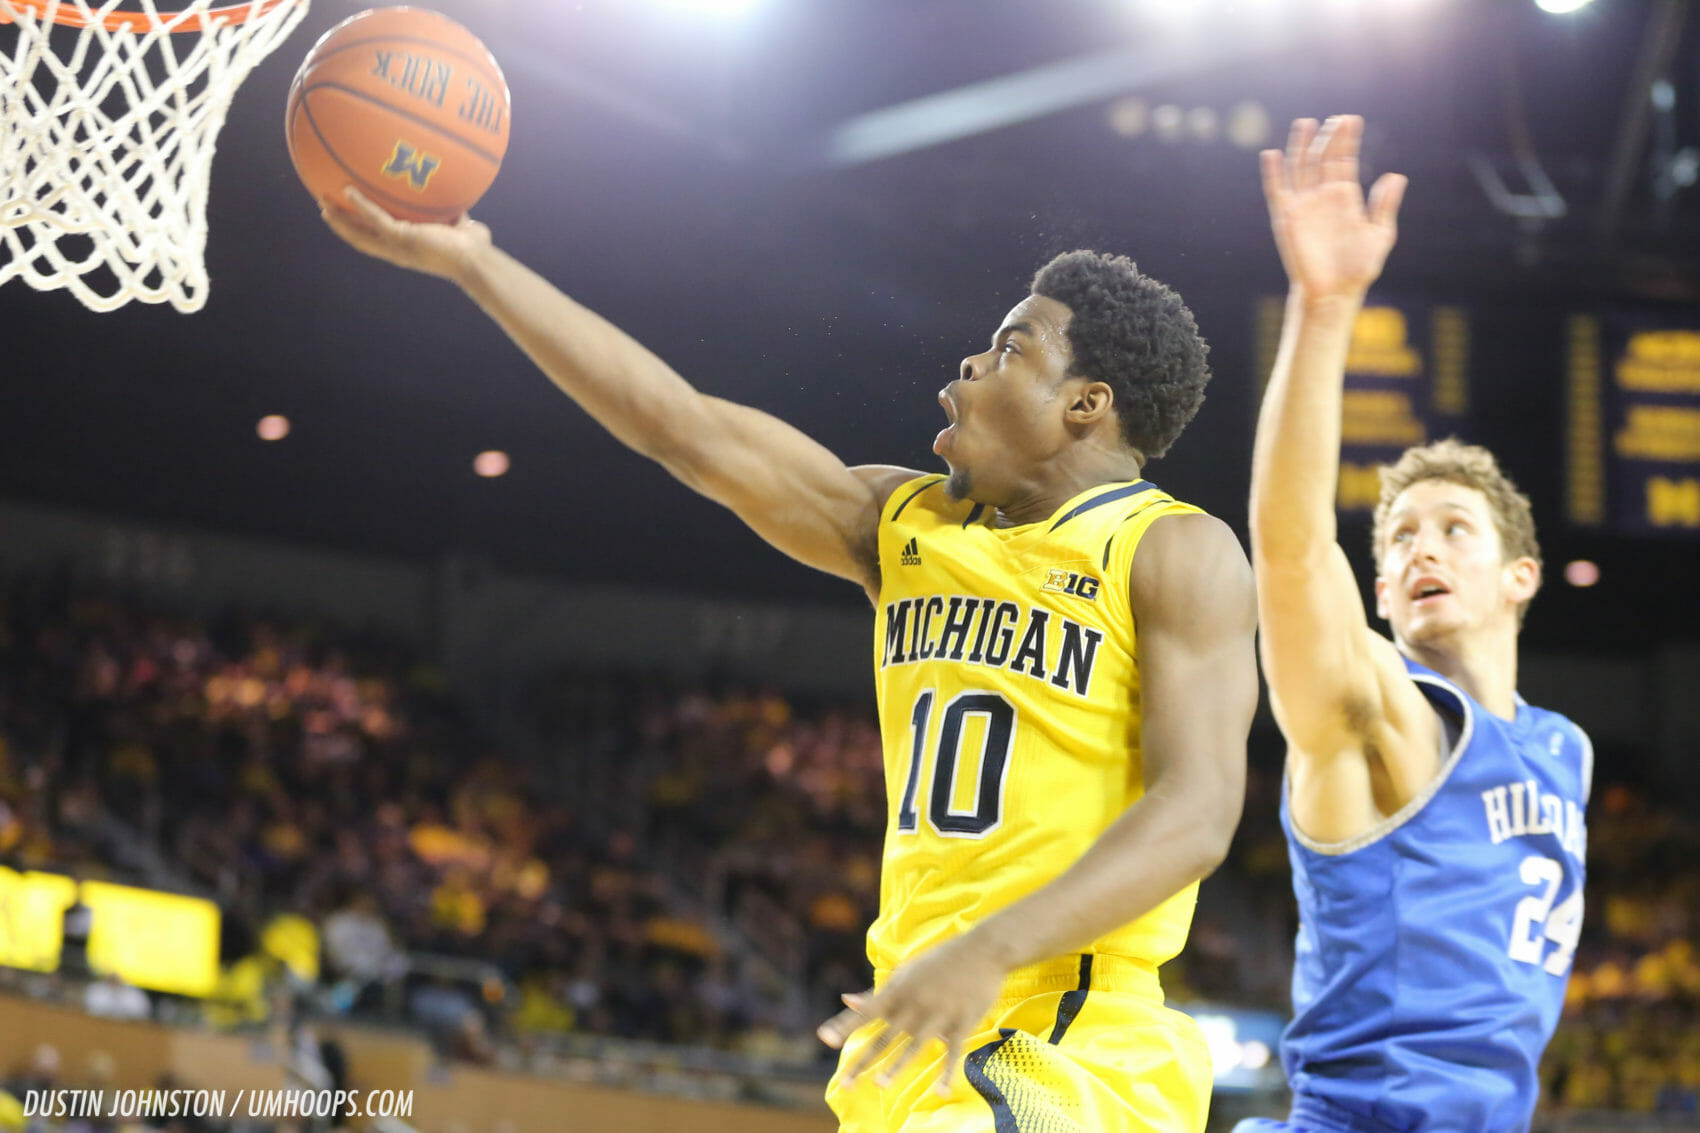 Michigan 92, Hillsdale 68-23